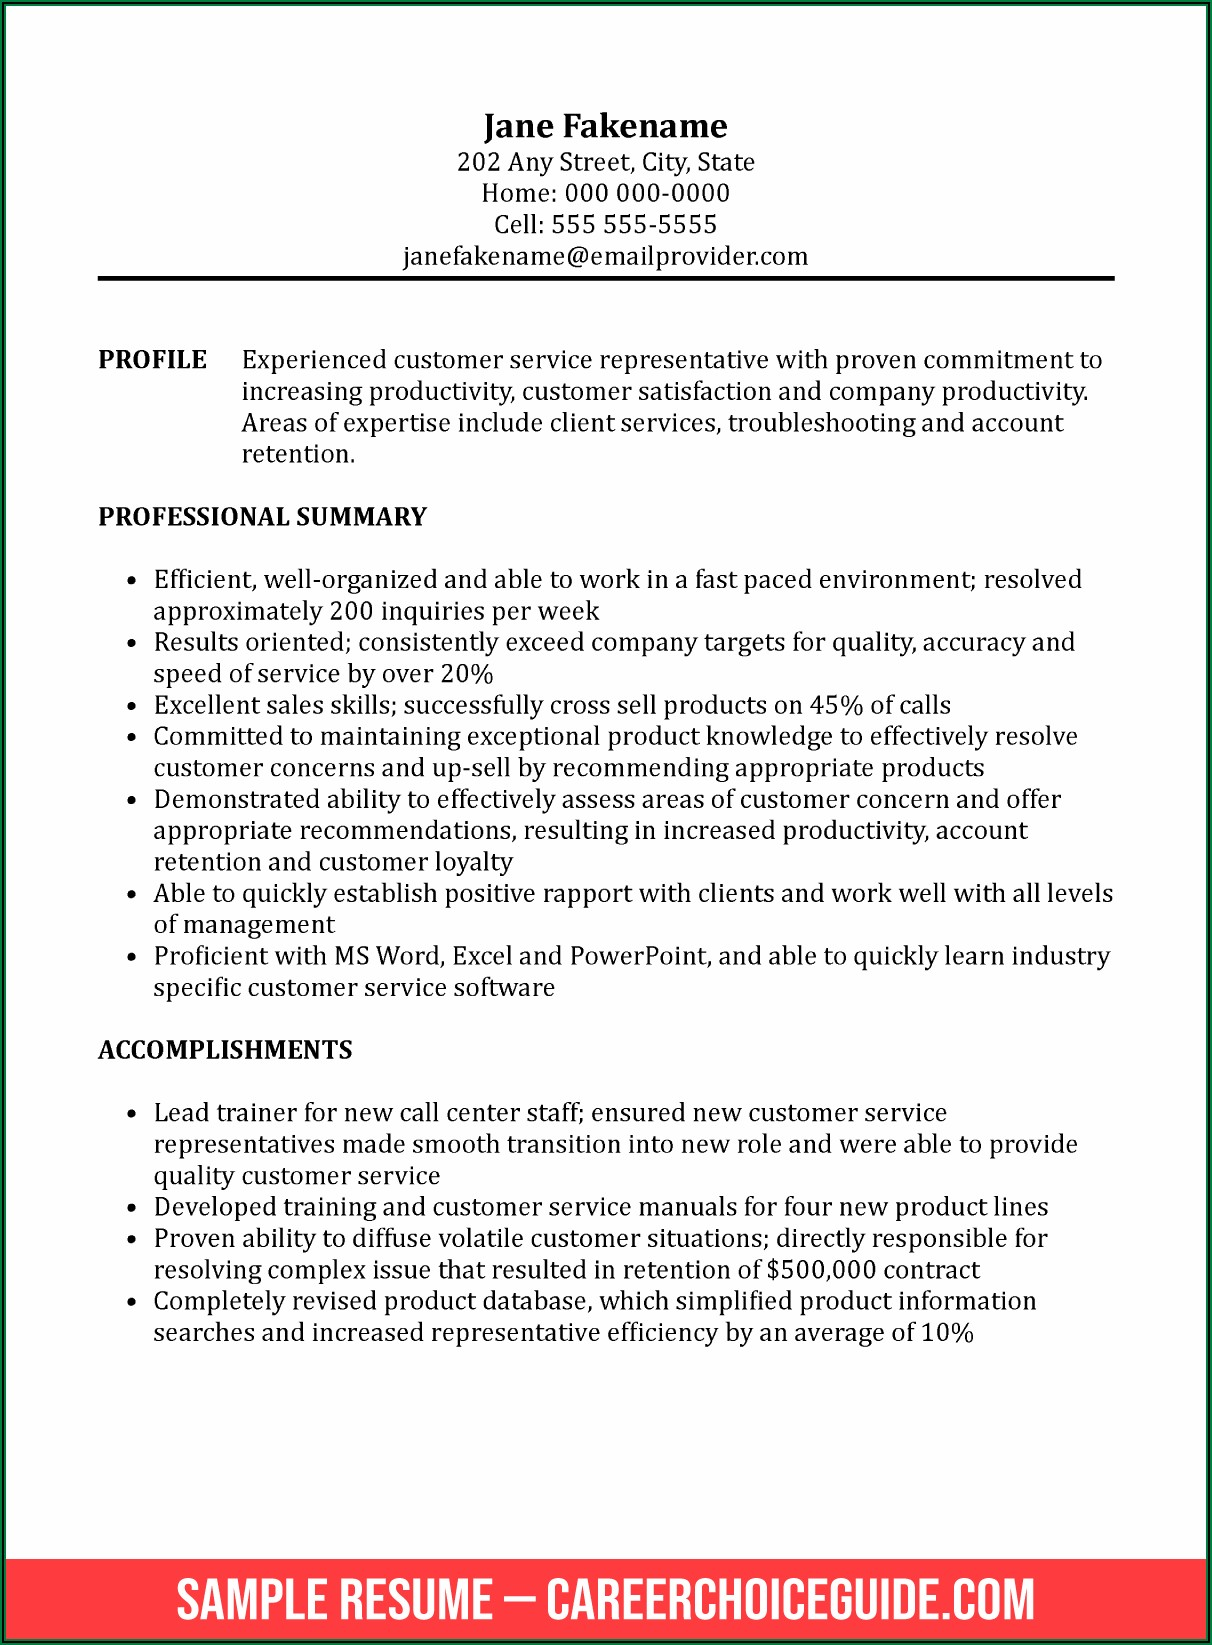 Examples Of Professional Summary For Customer Service Resume